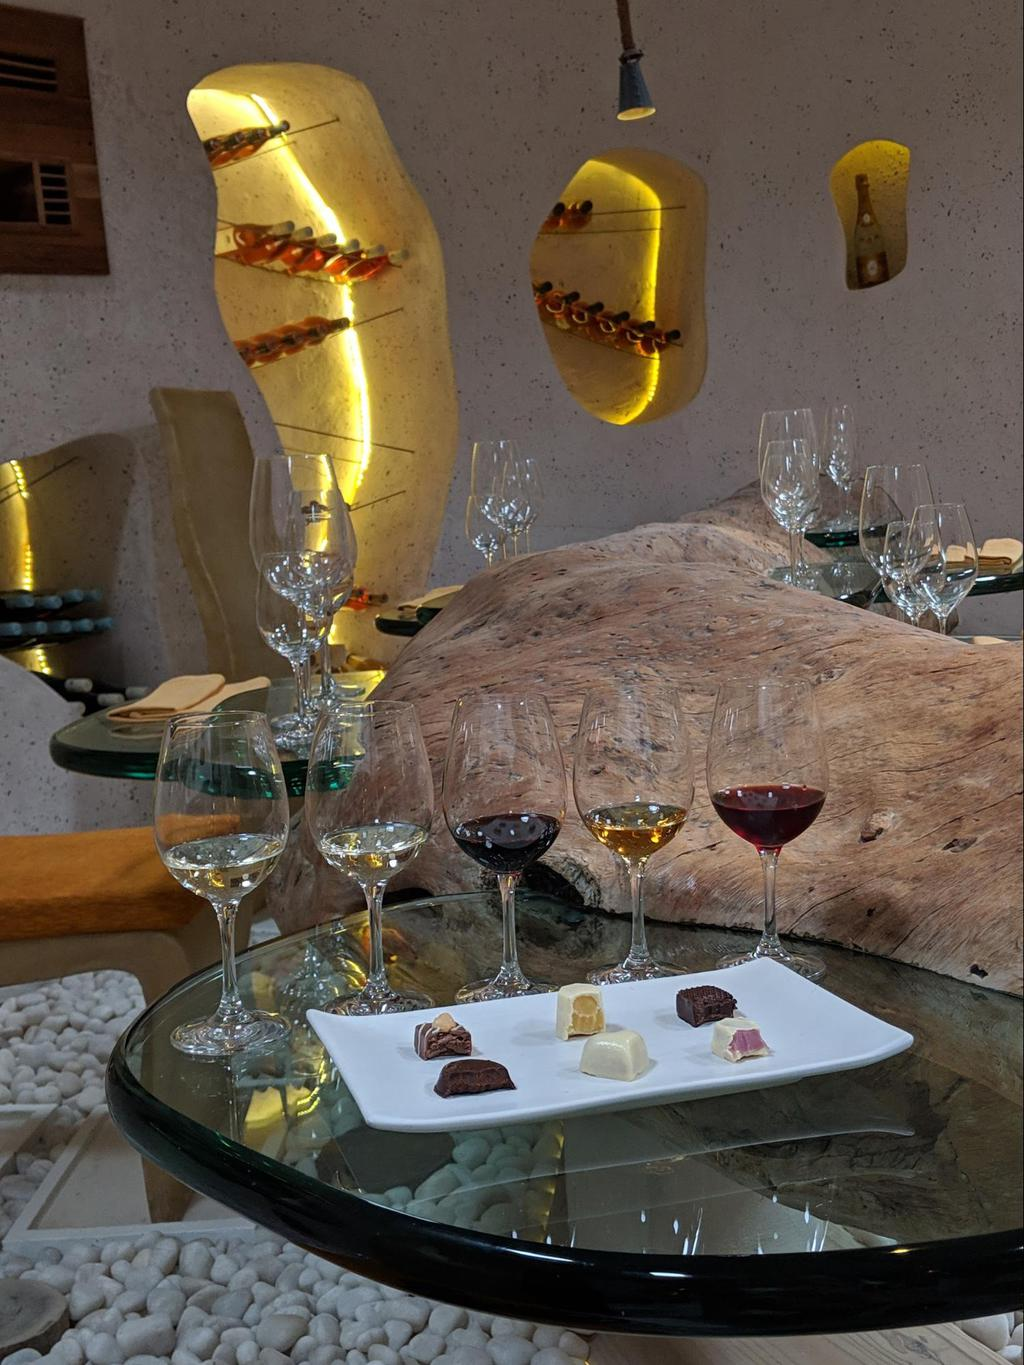 Wine and chocolate pairing at Gili Lankanfushi